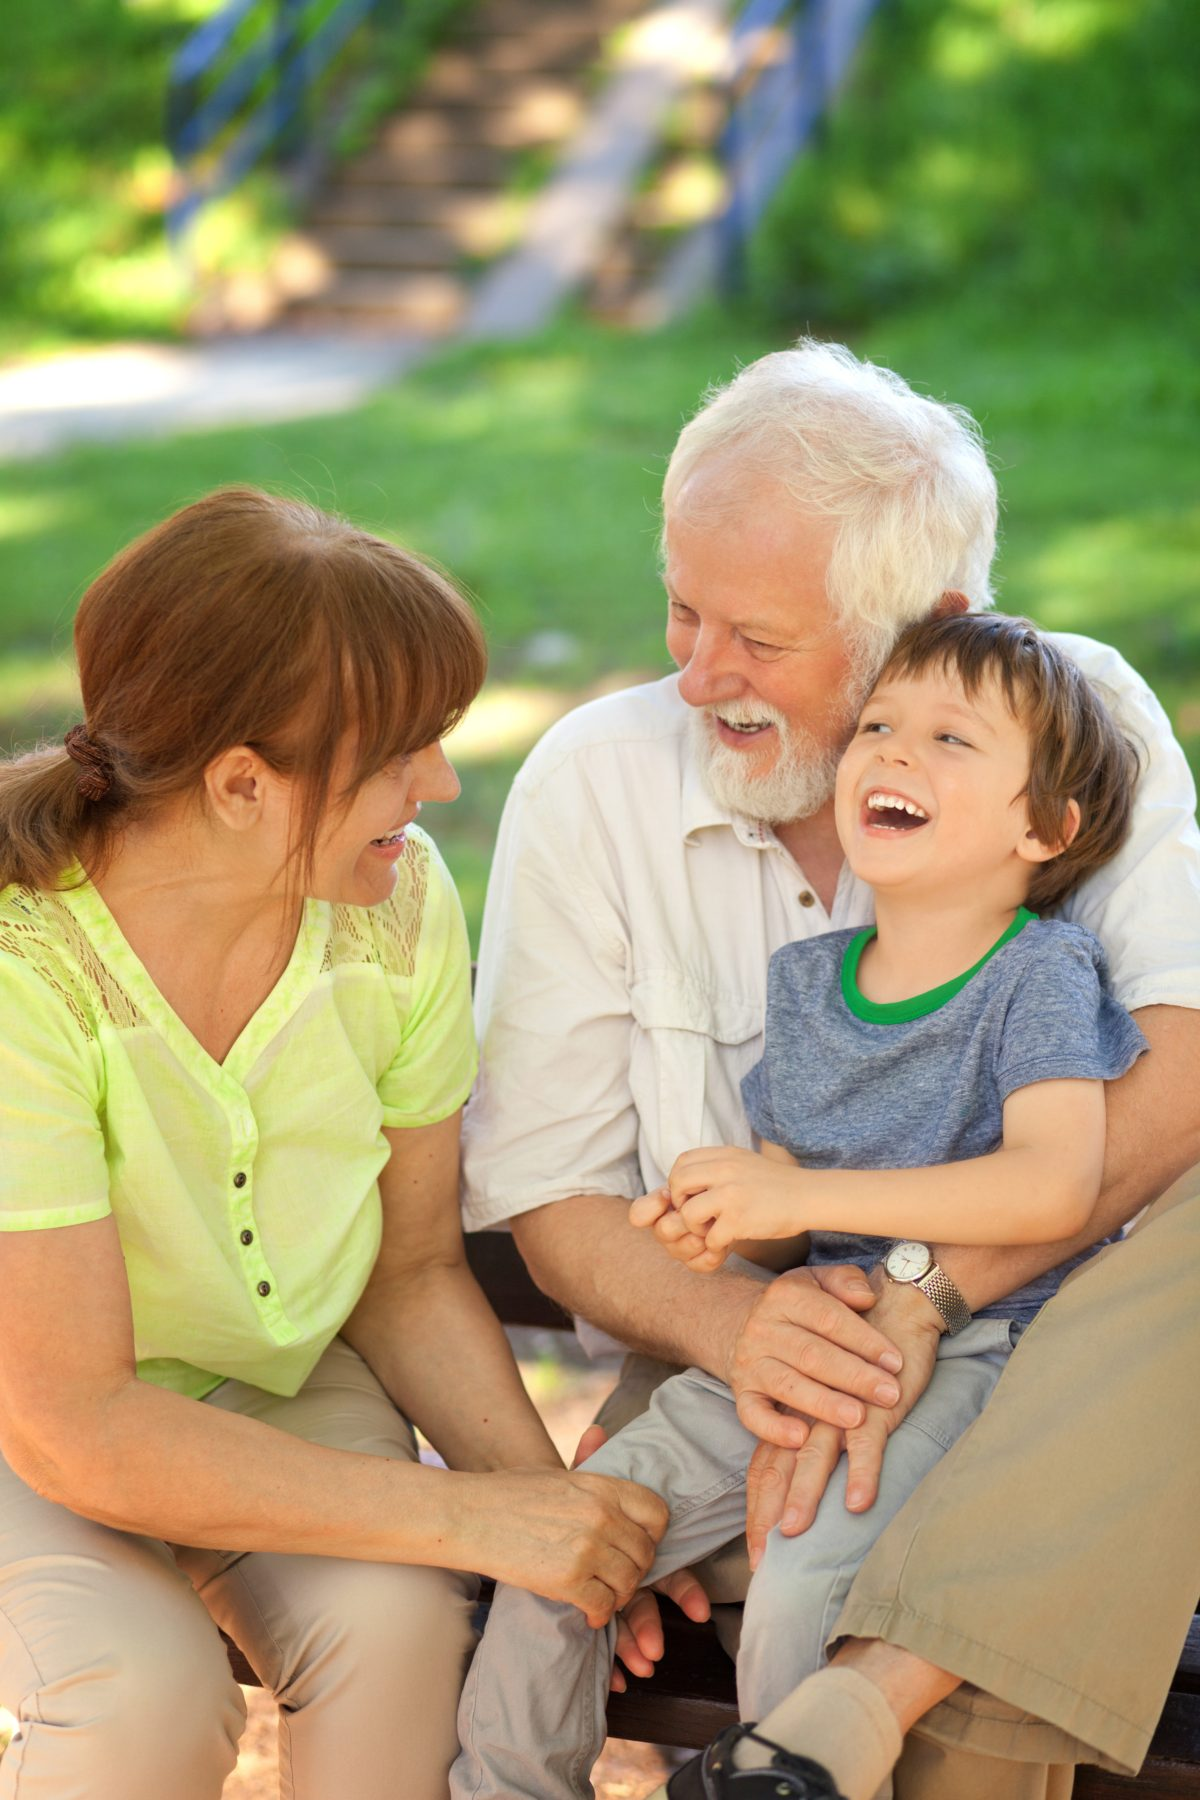 Wiser Home Care Services is available 24/7/365 to care for your elderly loved one to ensure they get the care they need.